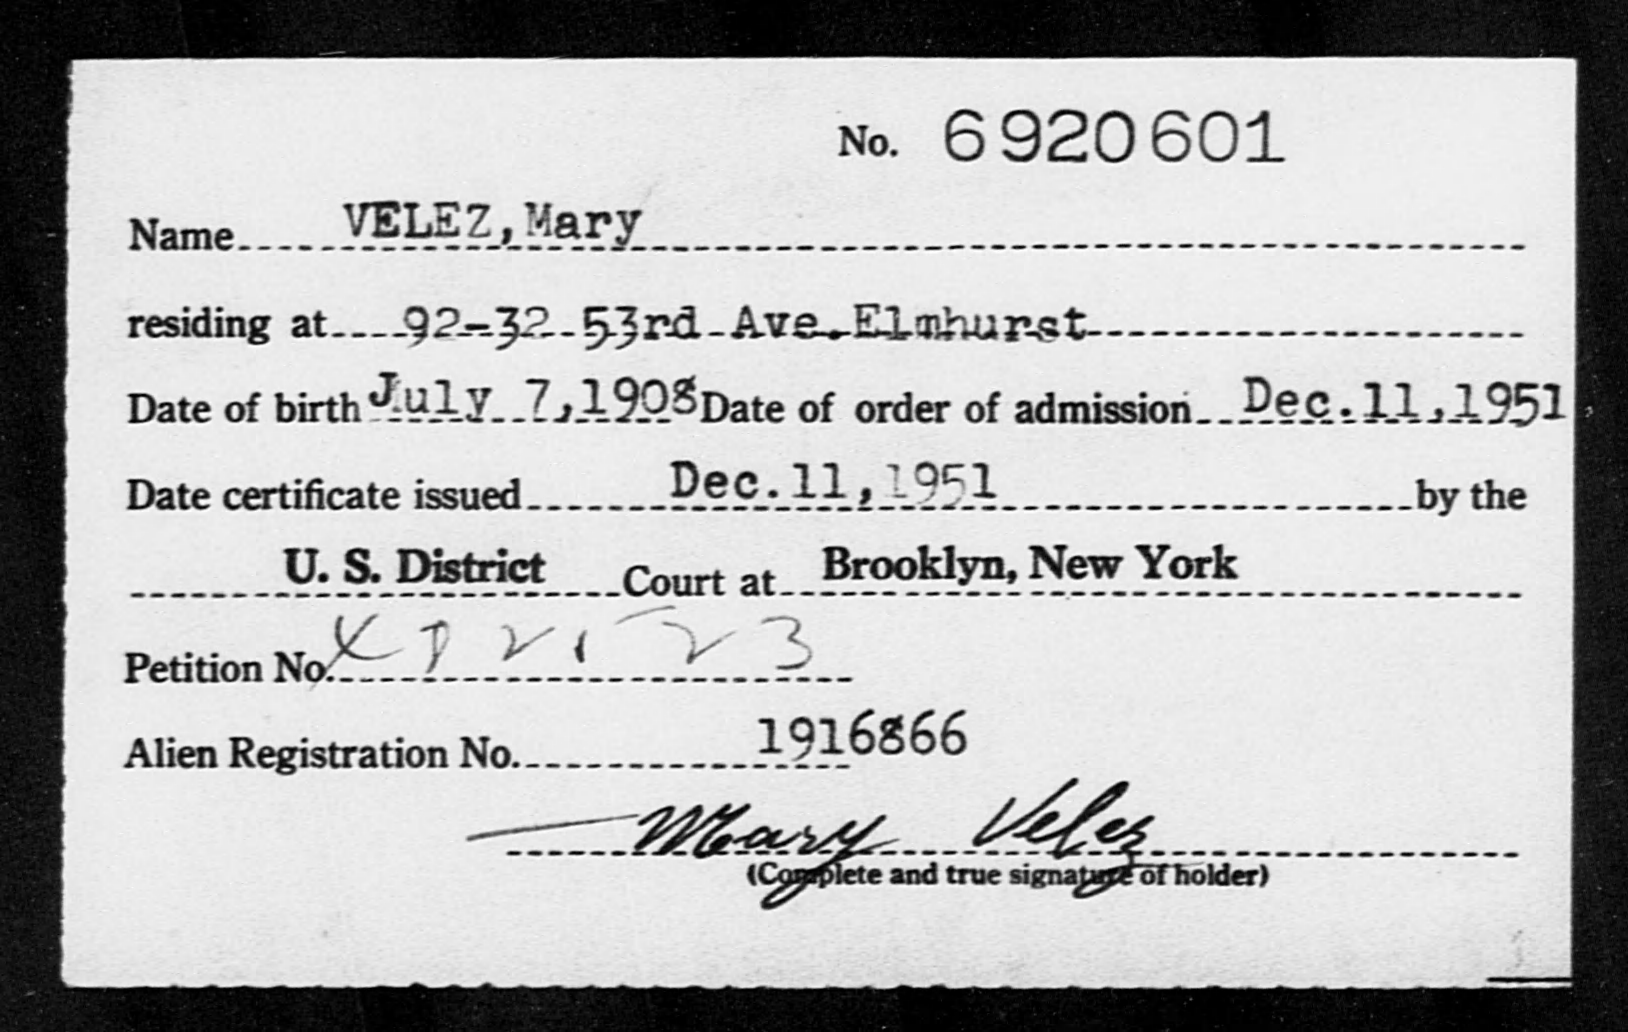 VELEZ, Mary - Born: 1908, Naturalized: 1951